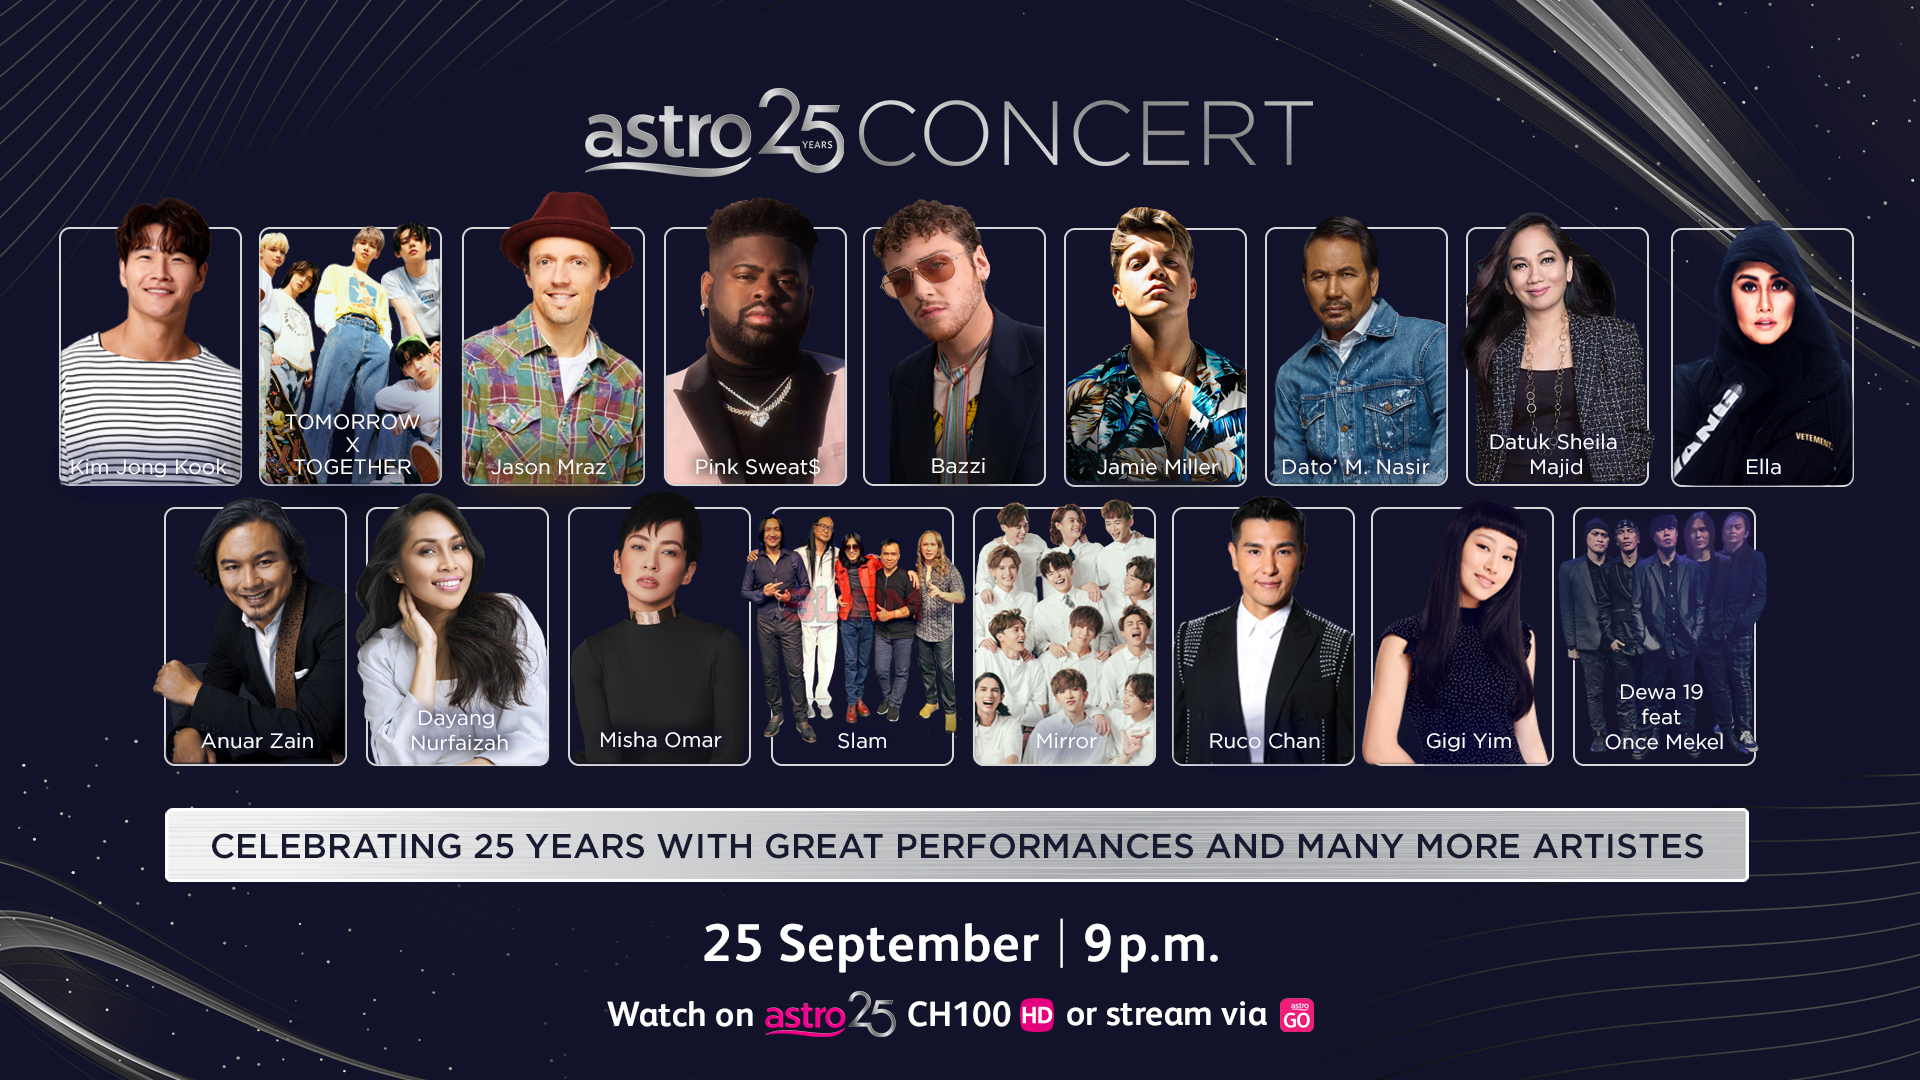 Special Astro 25 Concert with a star-studded line-up of International and Local Artistes